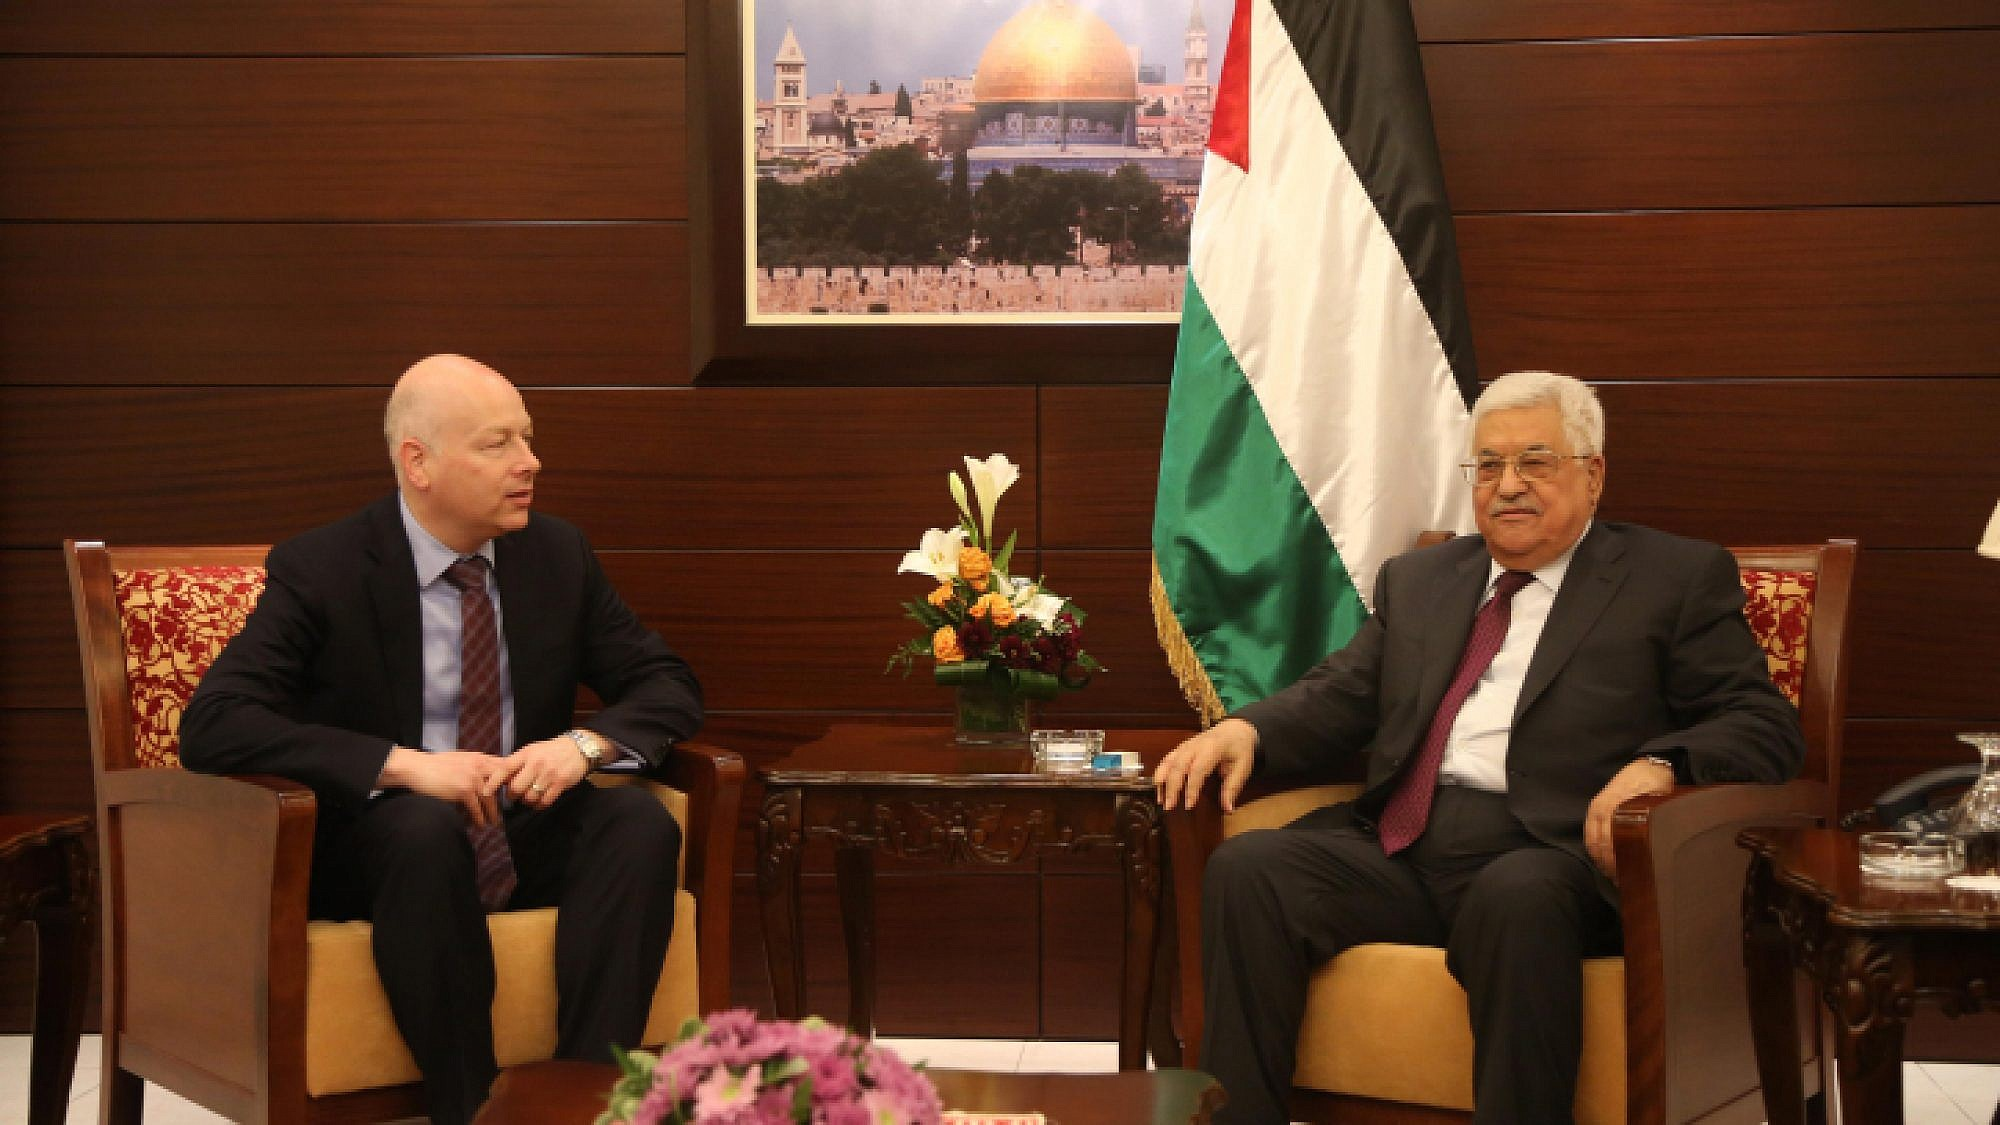 U.S. Assistant to the President and Special Representative for International Negotiations Jason Greenblatt with Palestinian leader Mahmud Abbas in the West Bank city of Ramallah on May 25, 2017. Photo by Flash90.